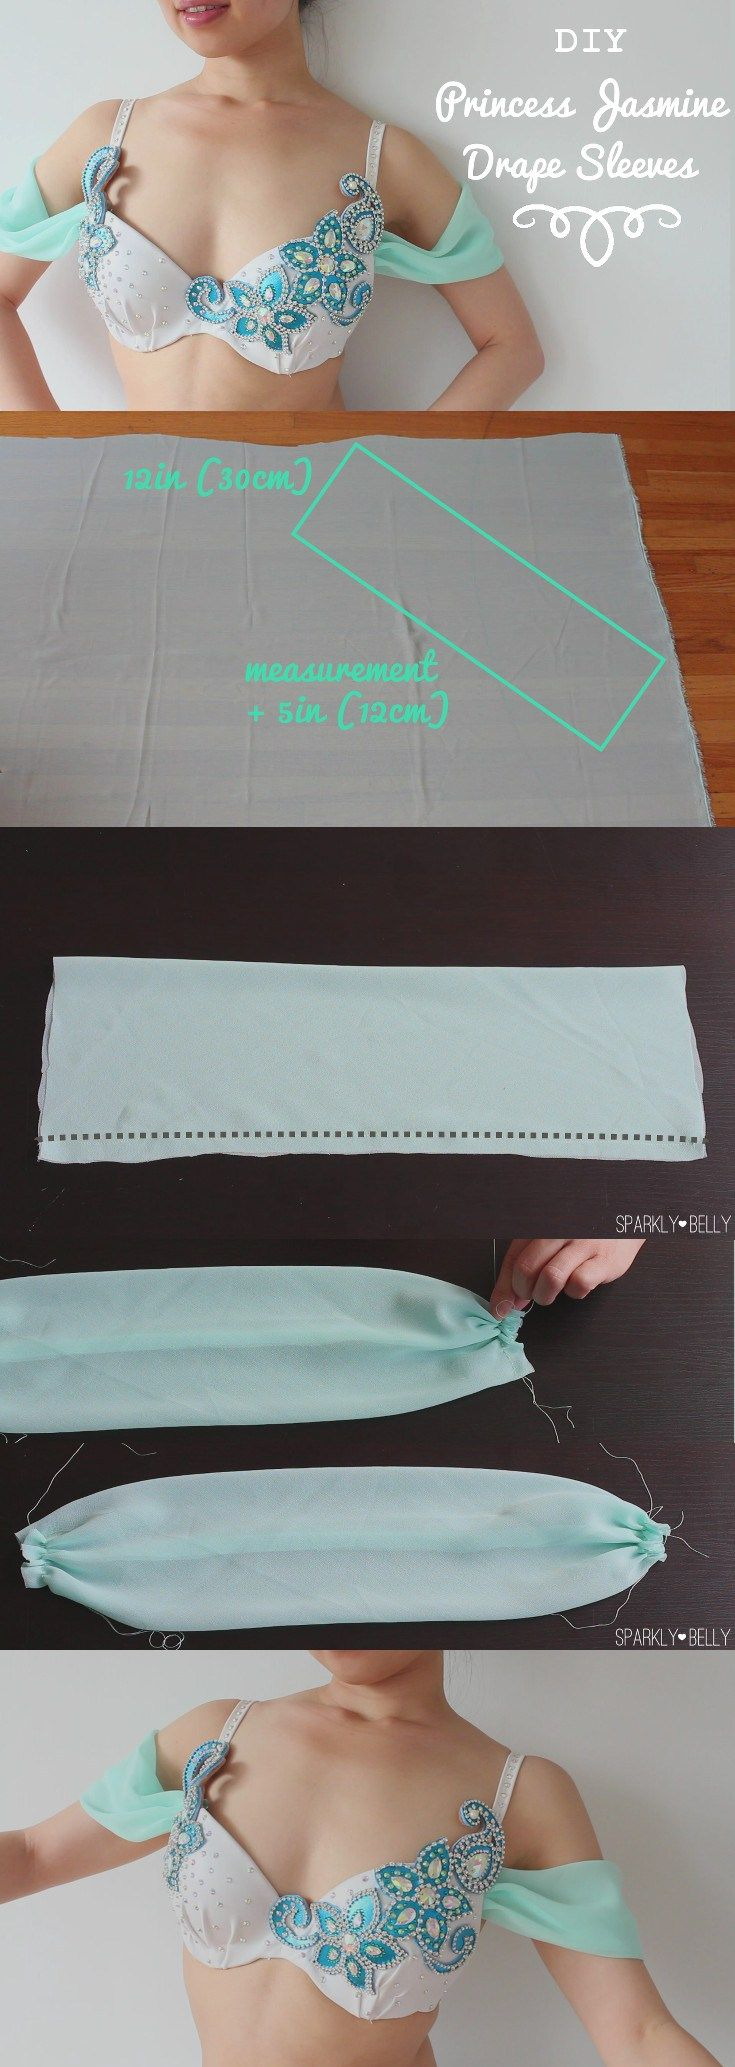 I love the sleeves on Princess Jasimine's outfit! Airy and romantic :) These are great for dance costumes and/or dresses. Princess Jasmine Sleeves DIY - Romantic Drape Sleeves